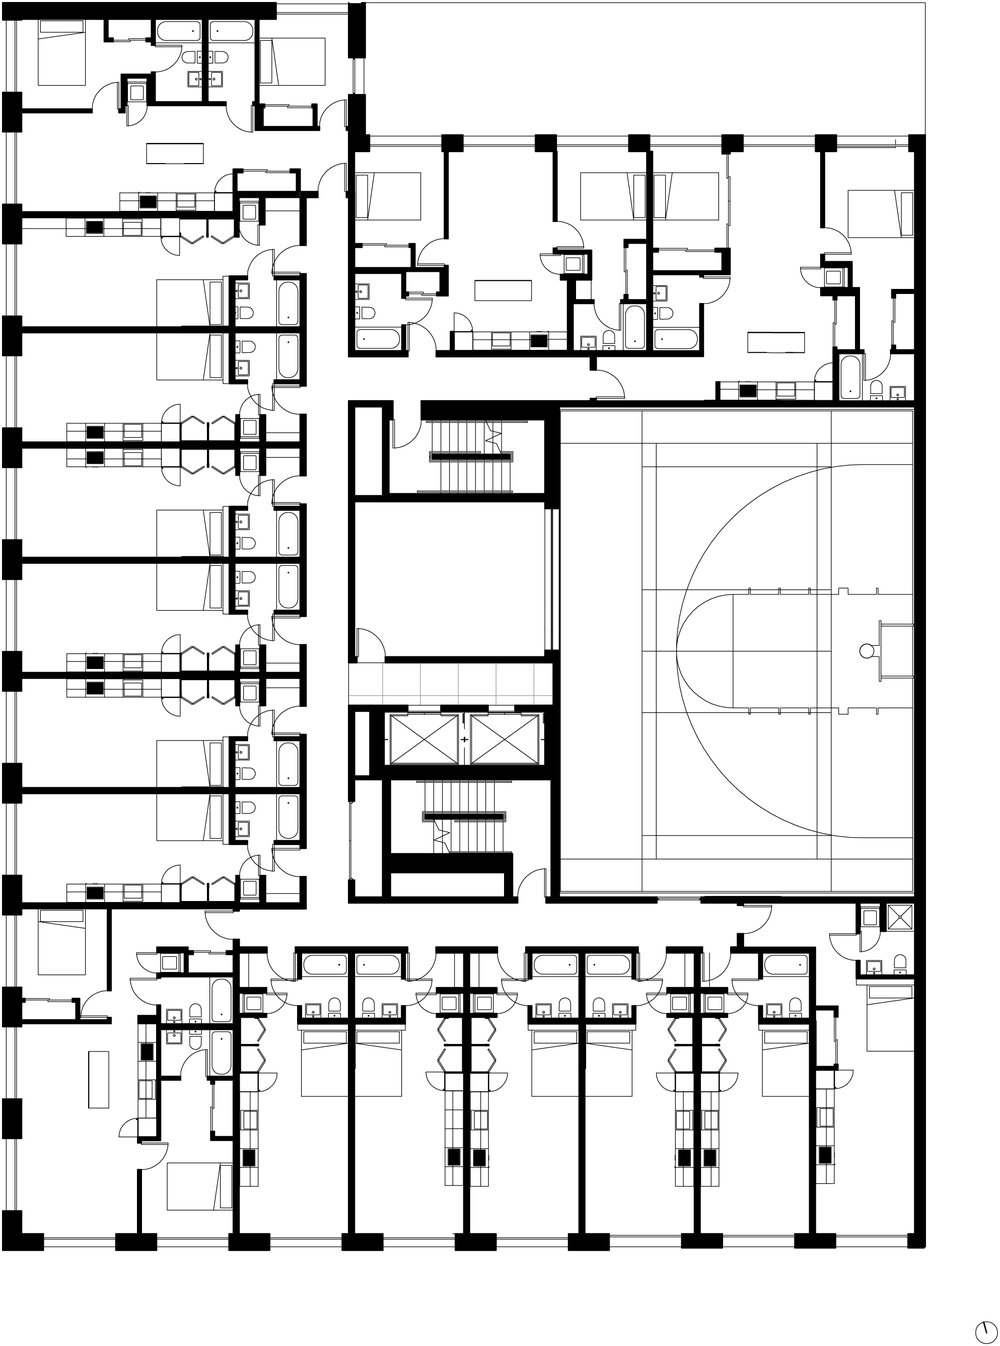 Floor plan with Multi-use Amentity Court.jpg